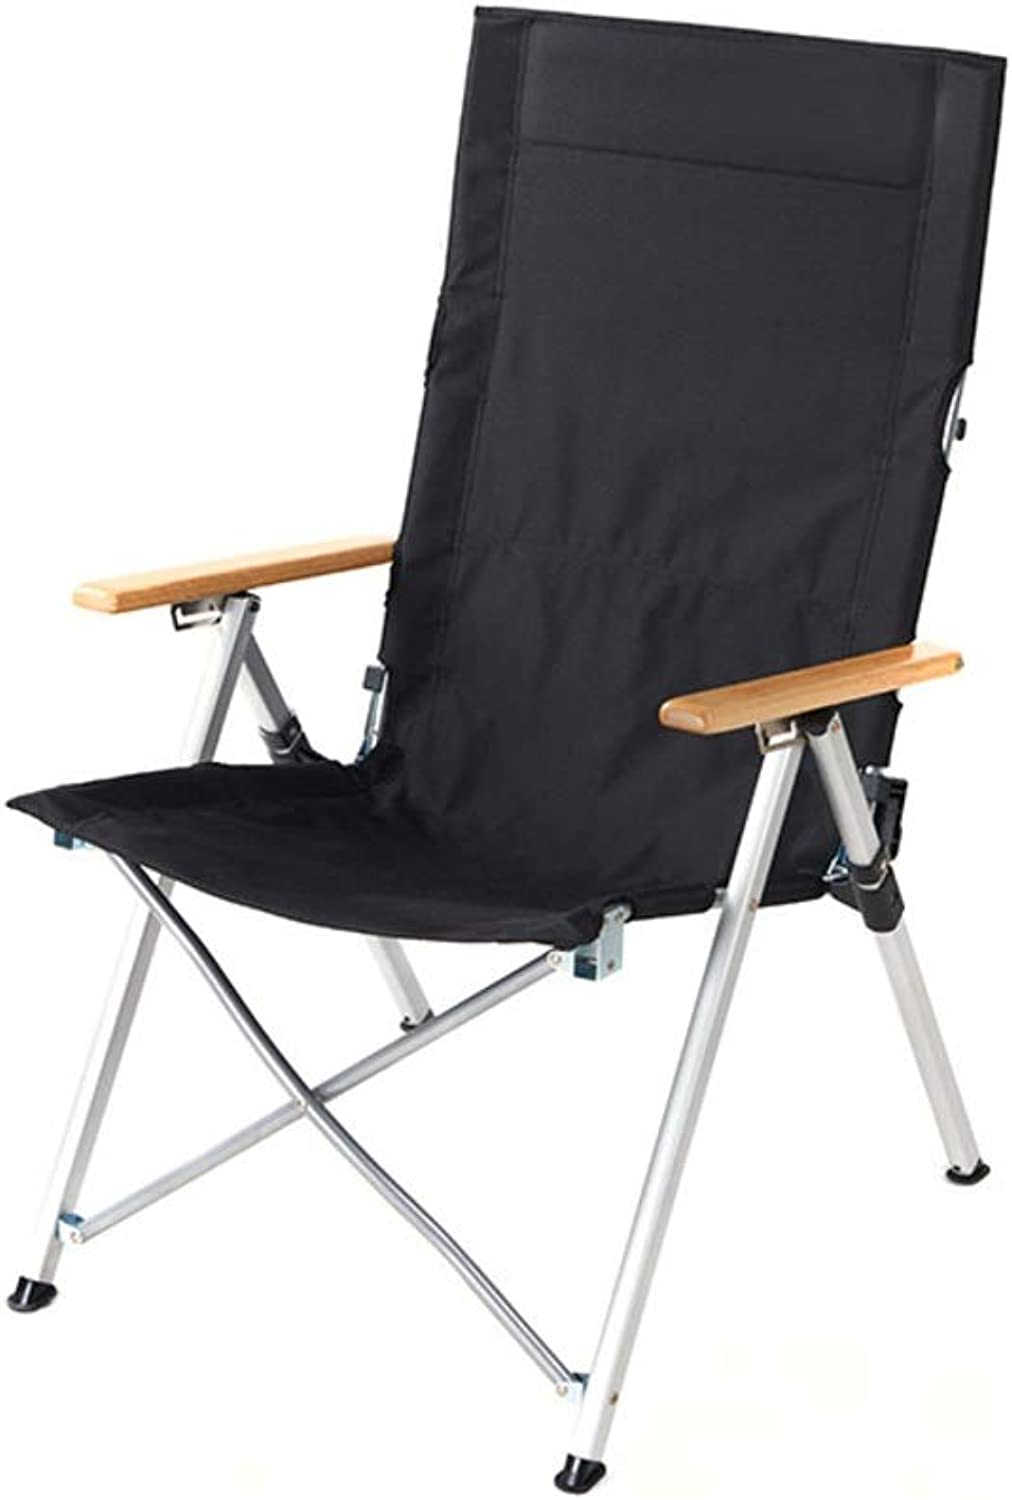 Portable Foldable Camping Chair ,Perfect for Camping Backpacking & Outdoor Festivals.Compact & Heavy Duty (Supports 308 lbs)